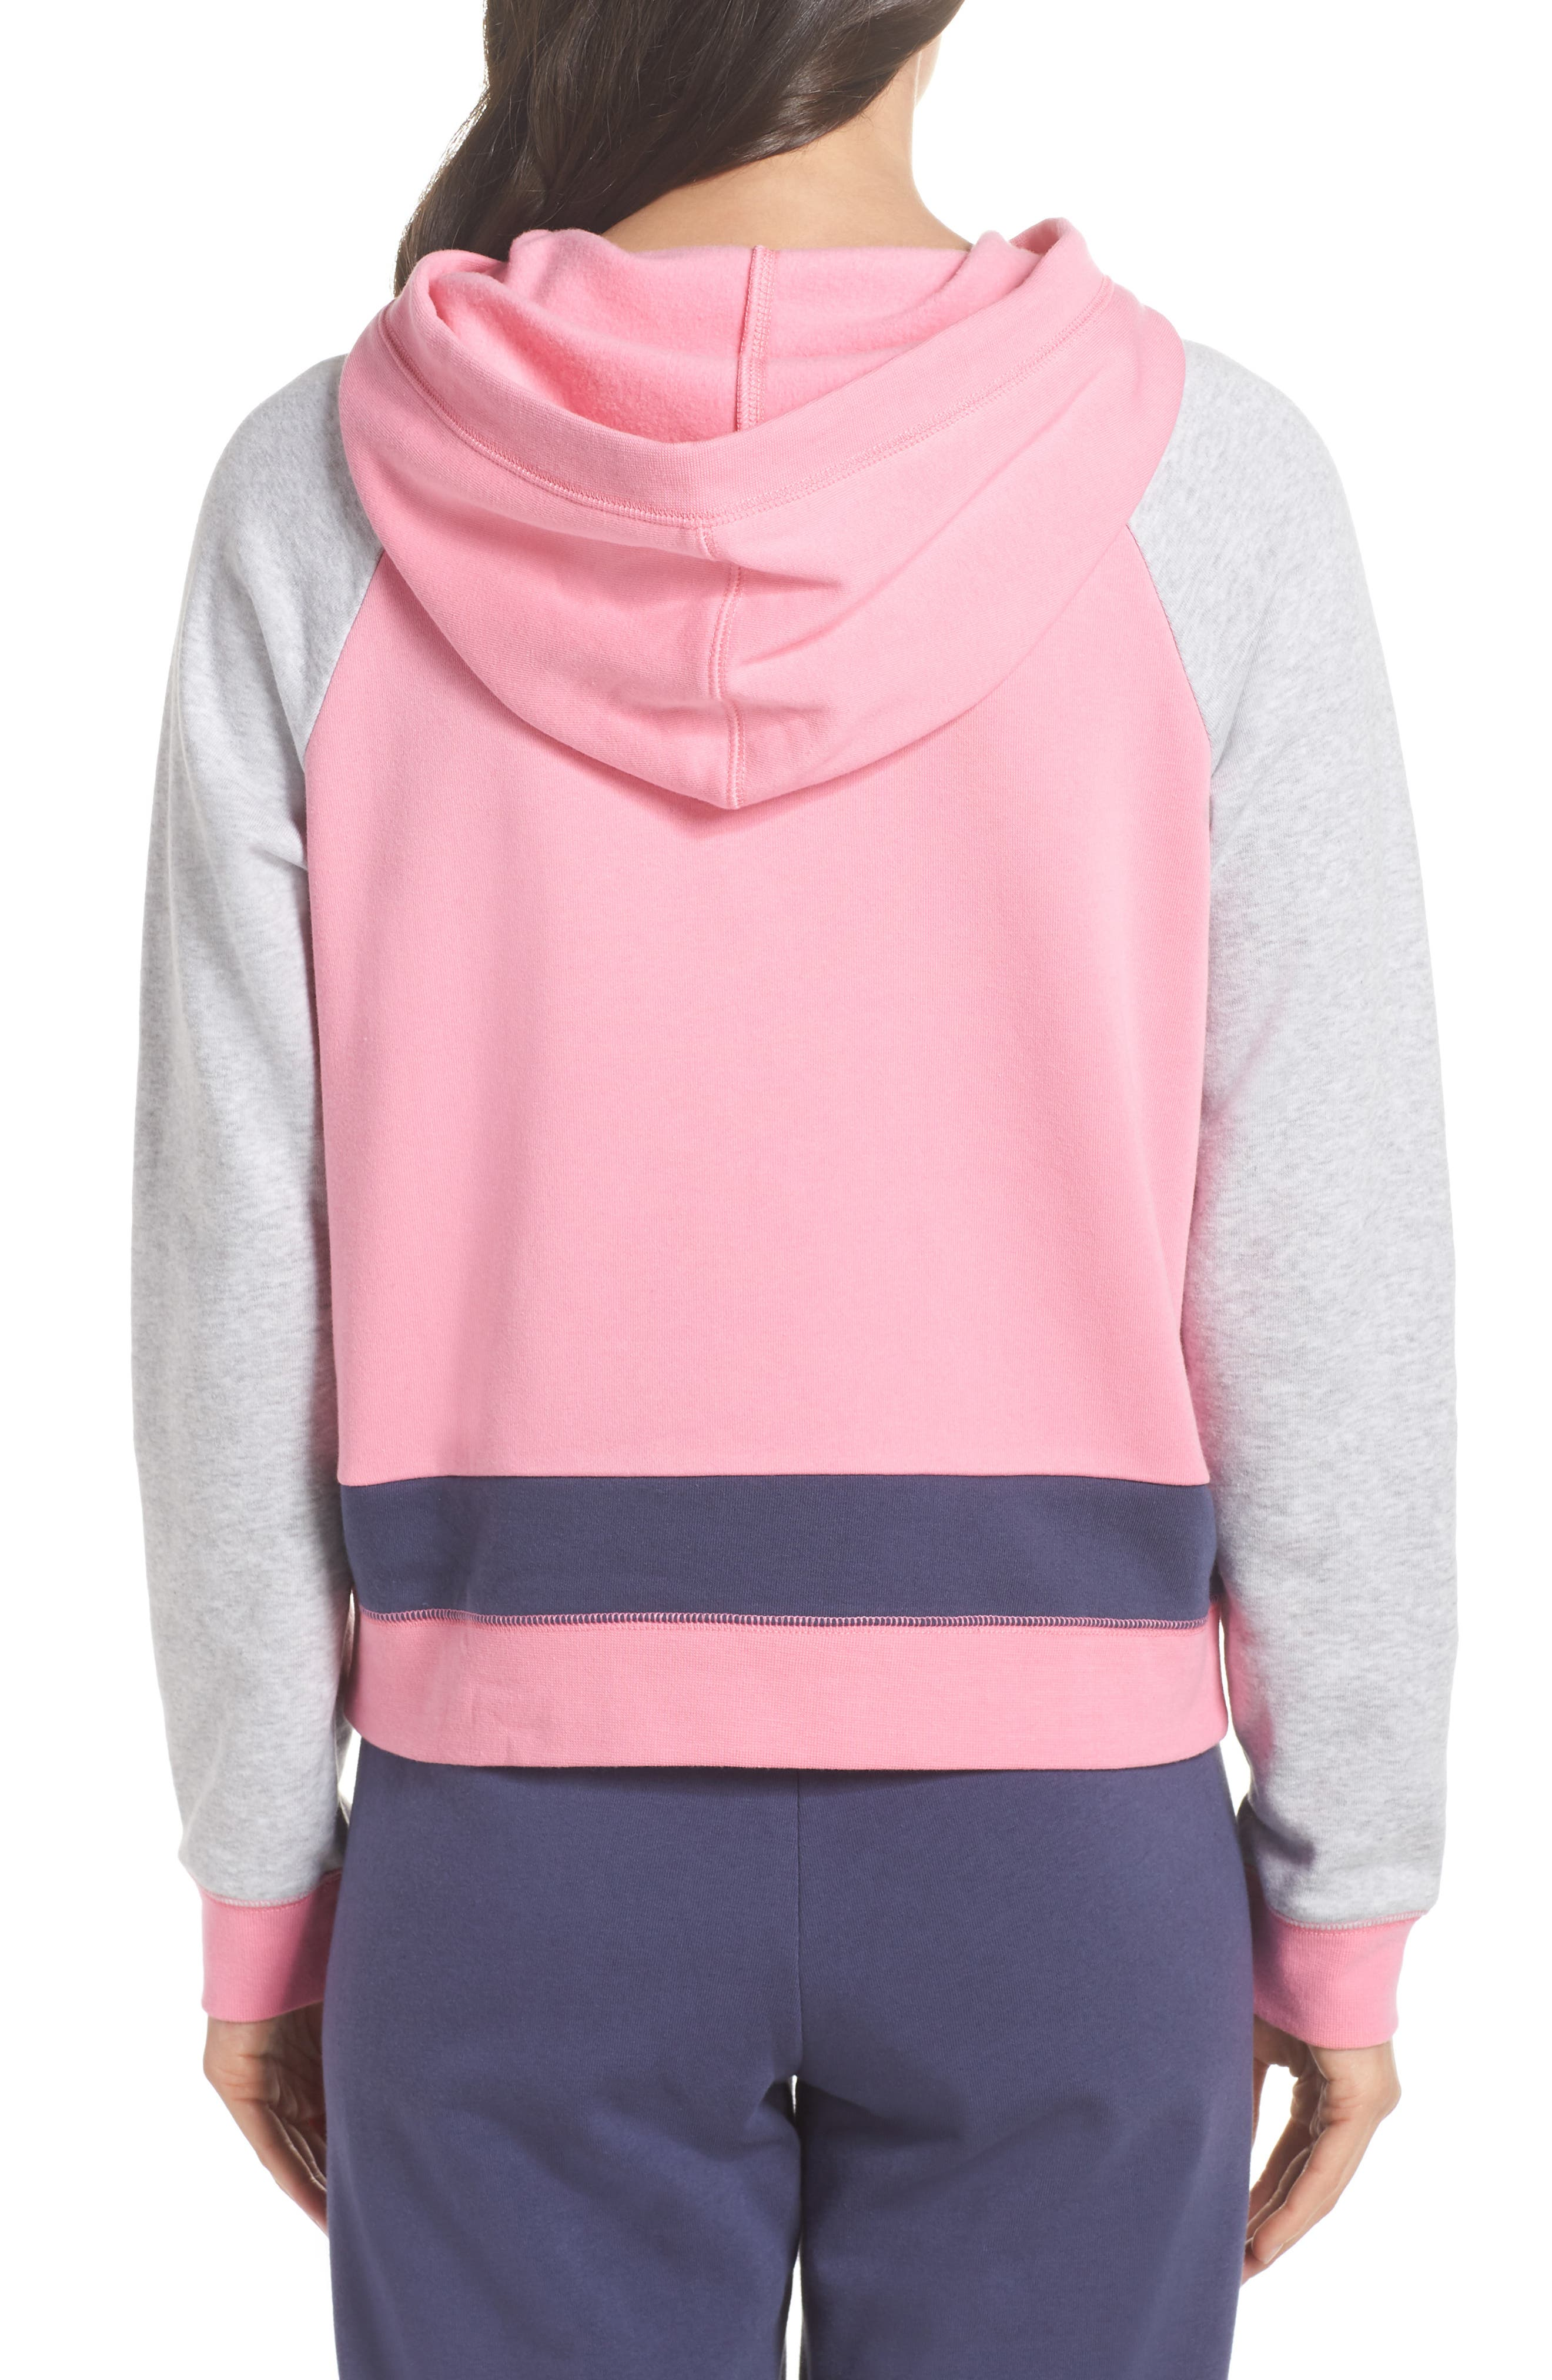 Sleepy Fleece Hoodie,                             Alternate thumbnail 2, color,                             660